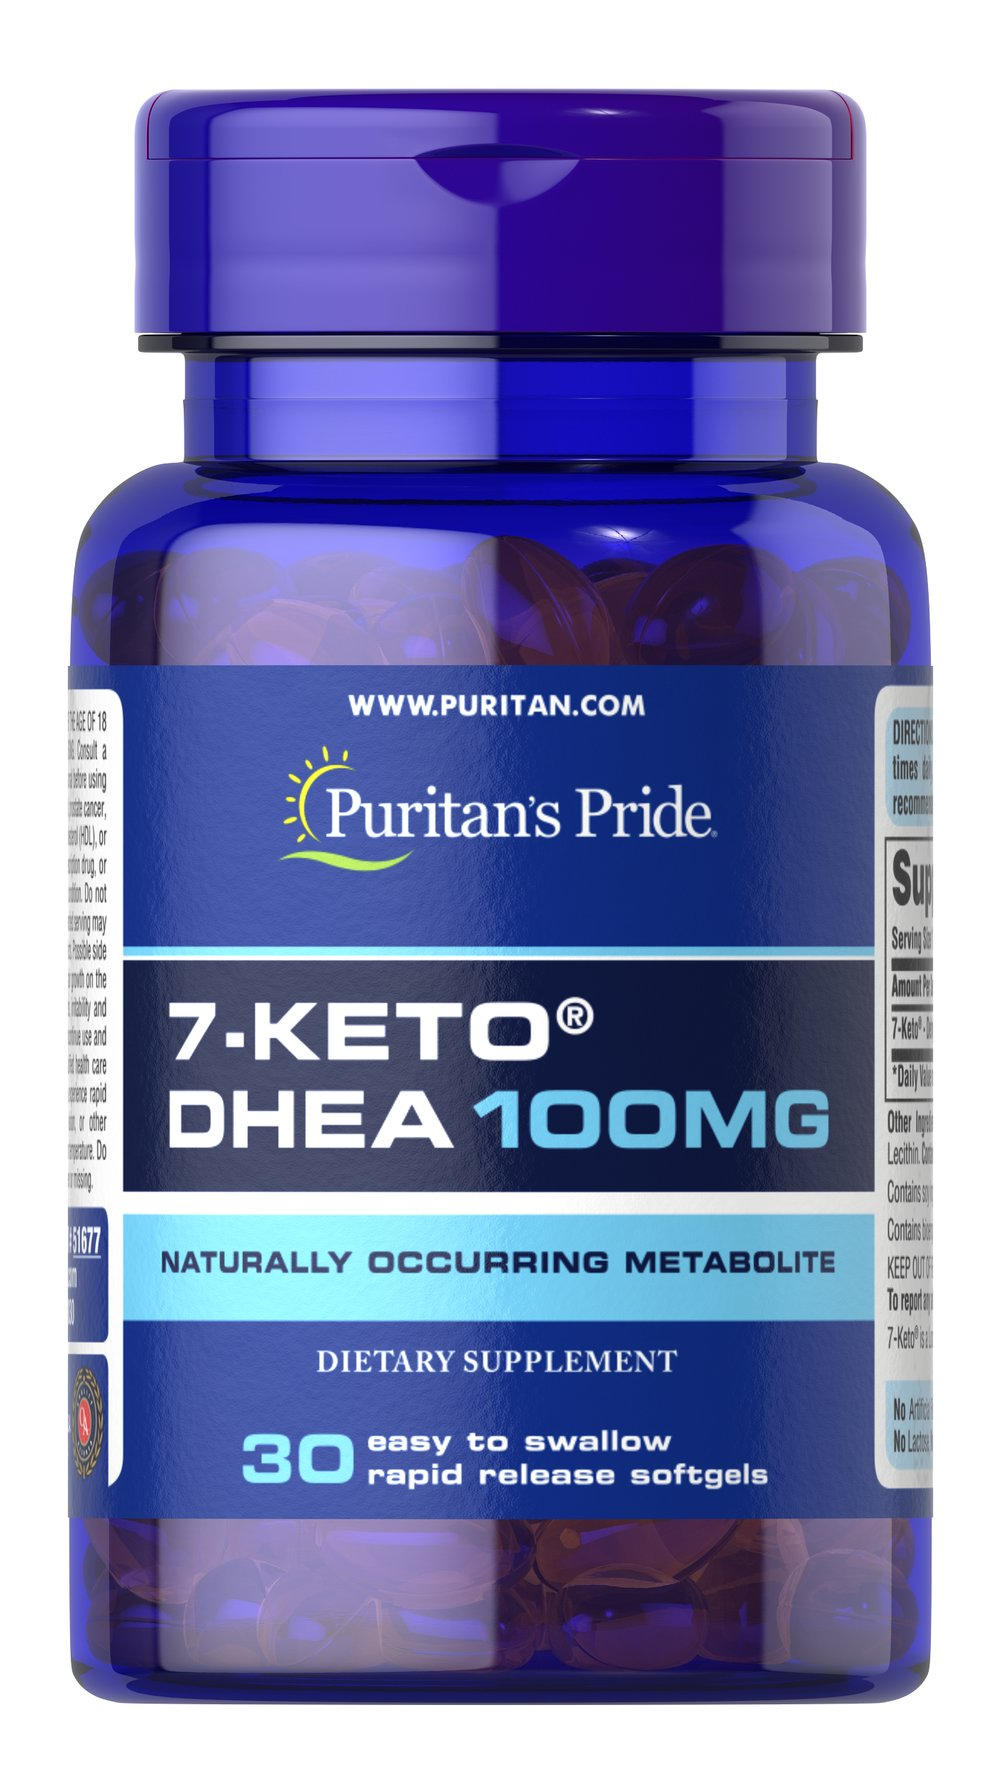 7-Keto® DHEA 100 mg <p>Naturally occurring metabolite.</p><p>100mg of DHEA in one softgel.</p><p>Rapid release.</p><p>7-Keto® is a naturally occurring metabolite of DHEA found in the body.  Levels of DHEA may decline with age, and 7-Keto® provides you with DHEA in an easy to swallow softgel. One serving of this dietary supplement provides 100mg of DHEA. Includes 30 rapid release softgels.</p> 30 Softgels 100 mg $28.99